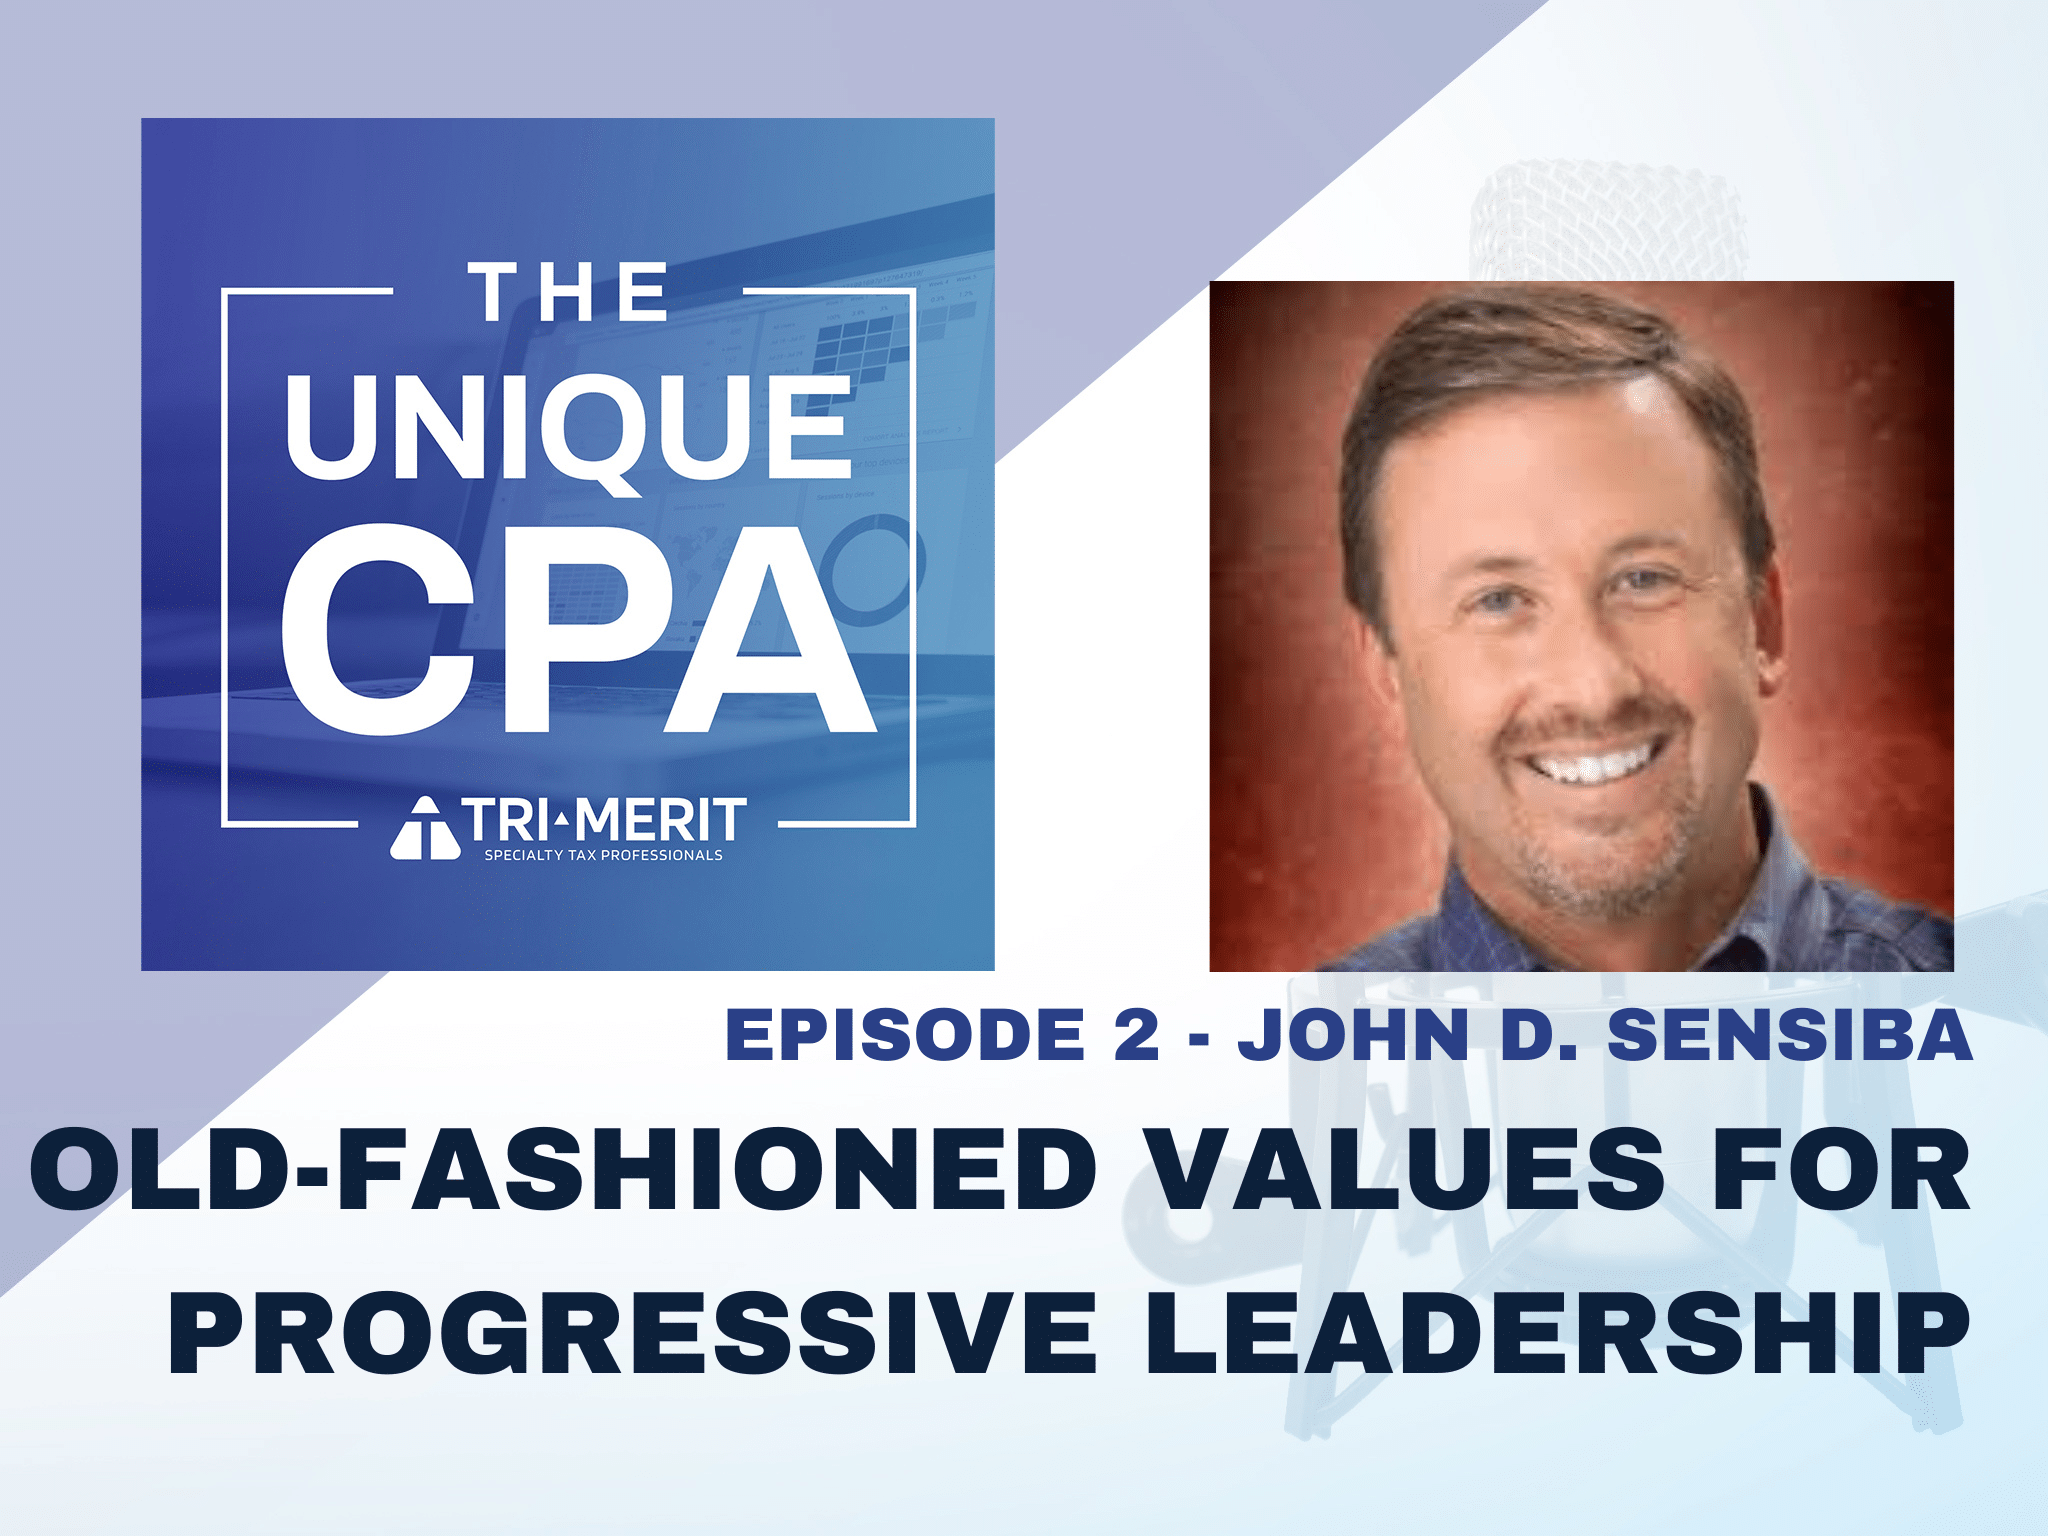 the unique cpa episode 2 - John D. Sensiba: Old-Fashioned Values for Progressive Leadership - Tri-Merit